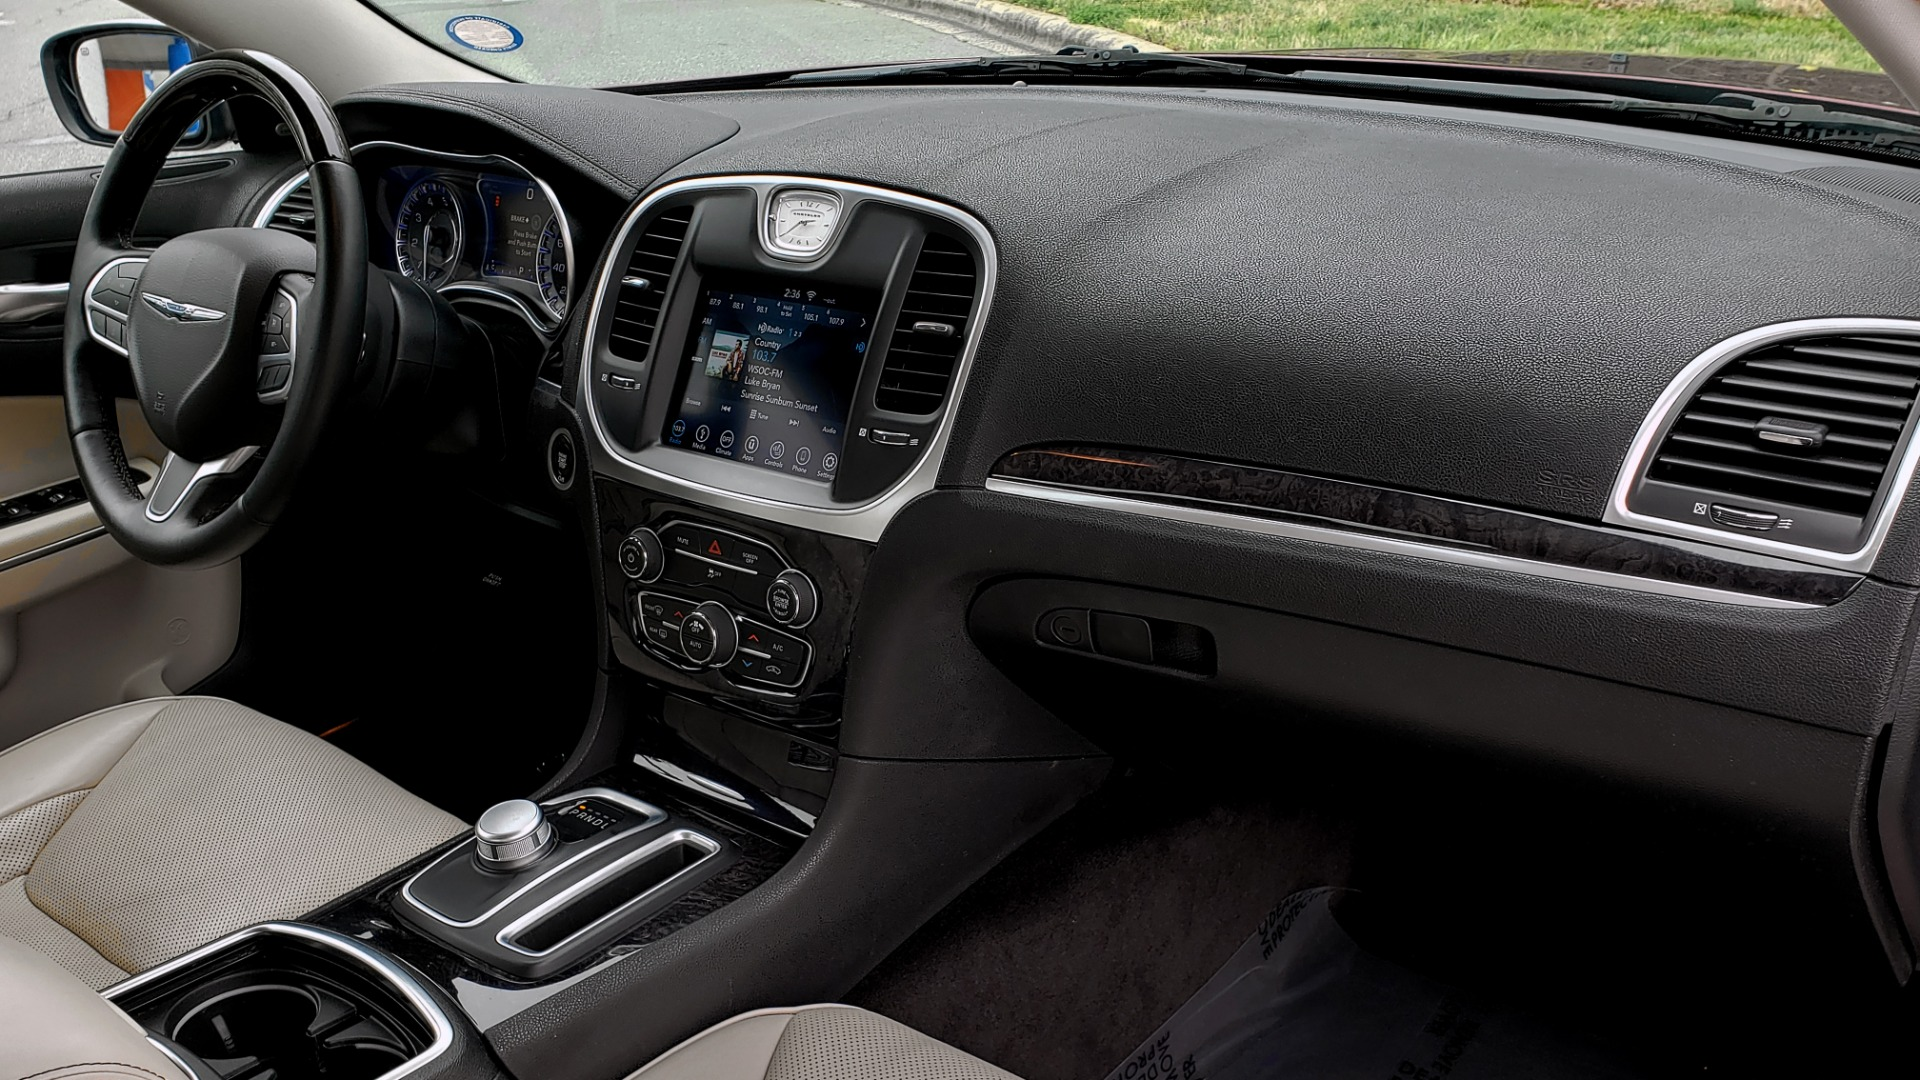 Used 2019 Chrysler 300 LIMITED / 3.6L V6 / 8-SPD AUTO / LEATHER / REARVIEW for sale Sold at Formula Imports in Charlotte NC 28227 71